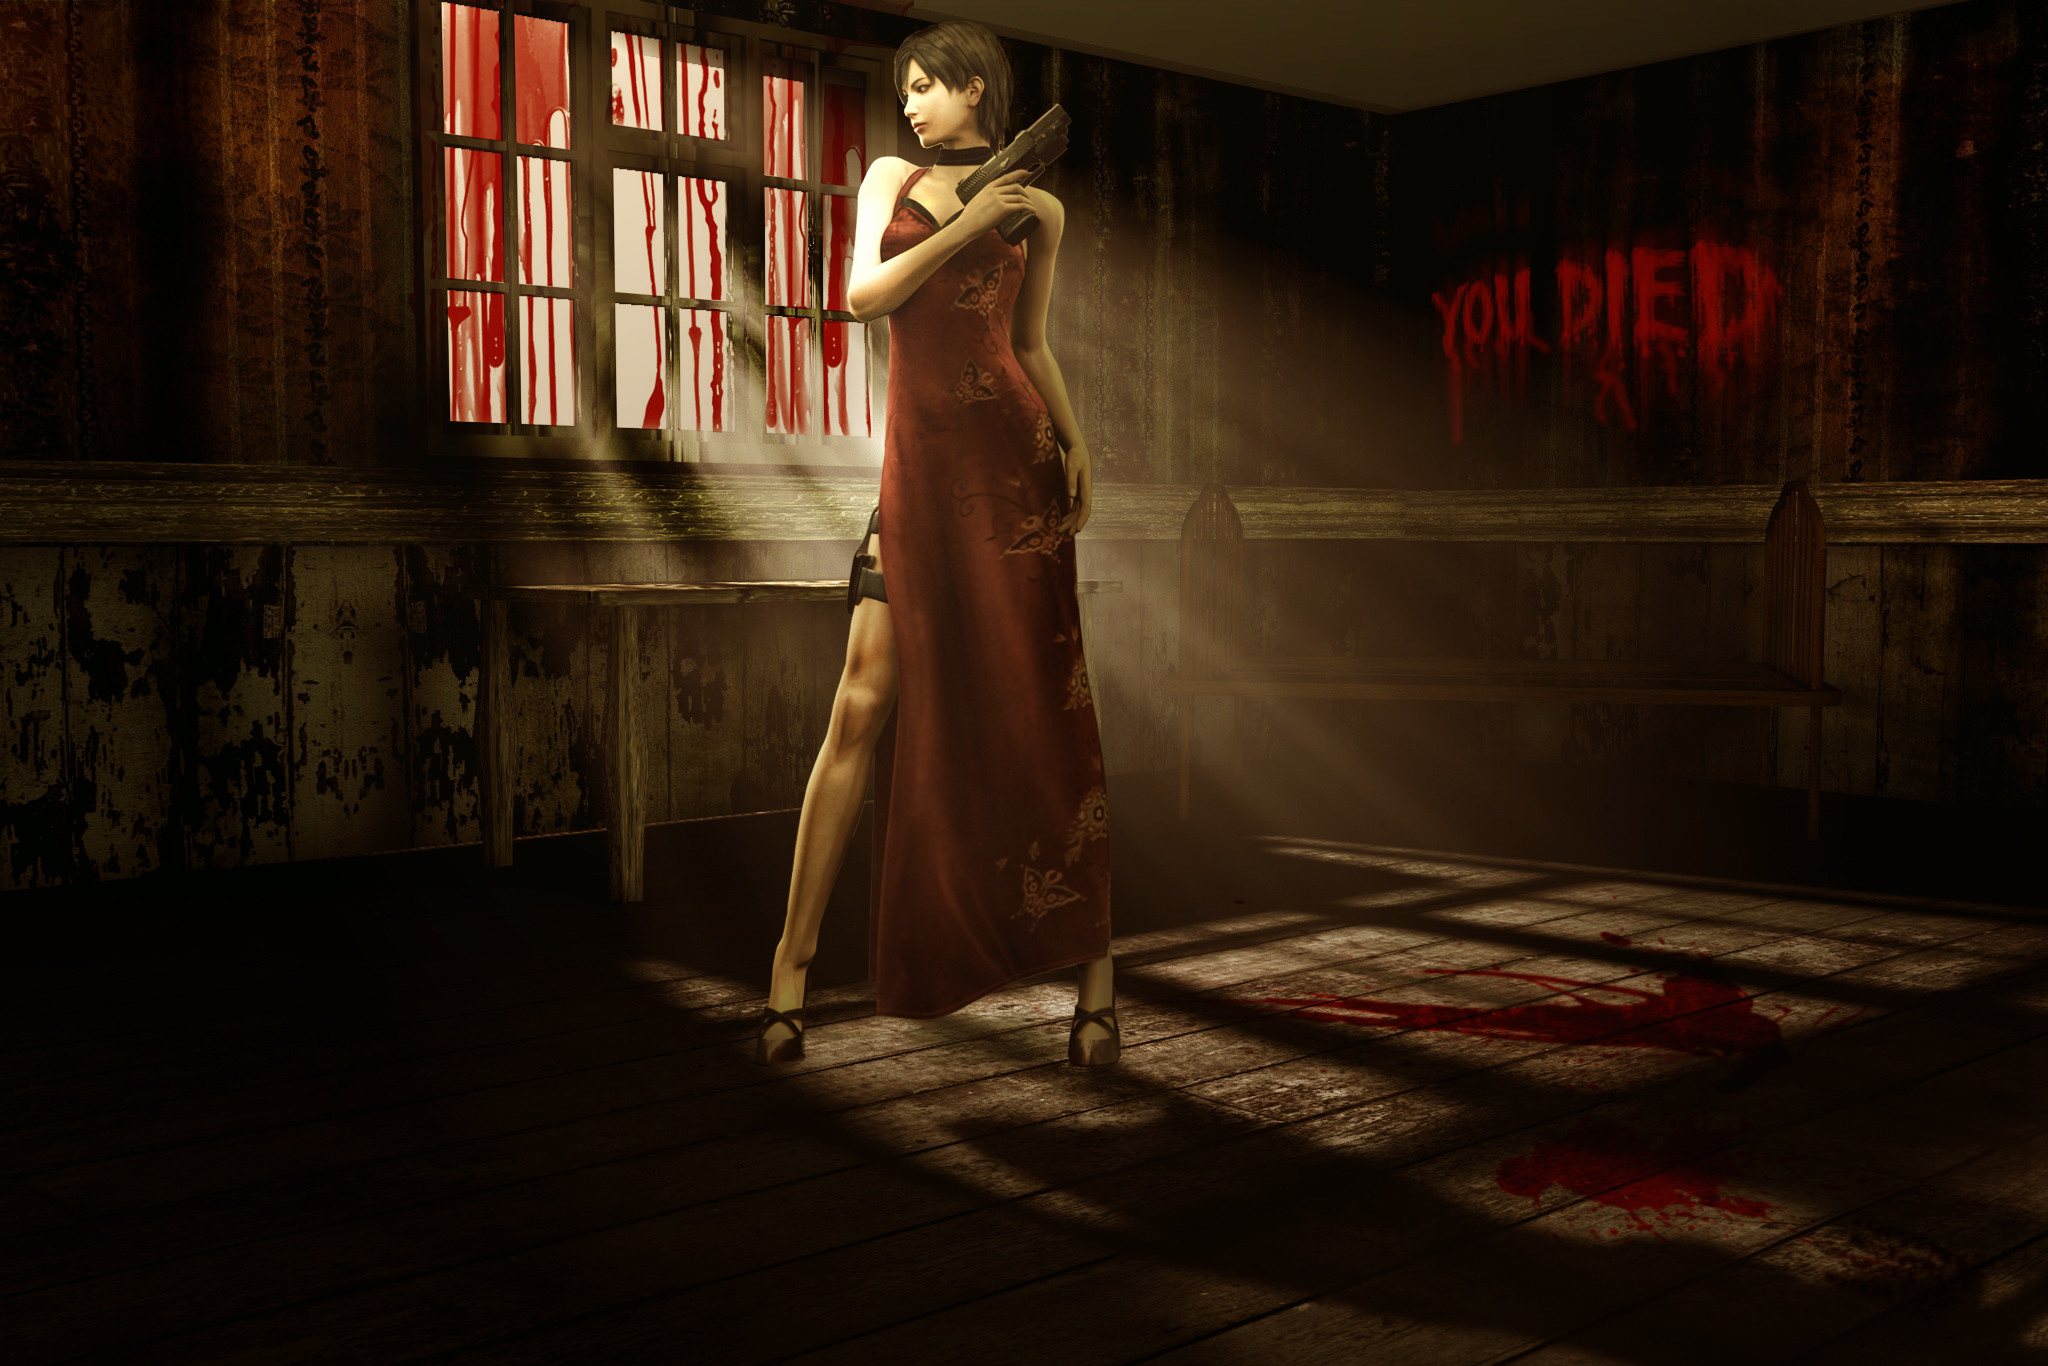 2048x1366 Ada Wong Wallpaper 6 by Yokoylebirisi Ada Wong Wallpaper 6 by Yokoylebirisi